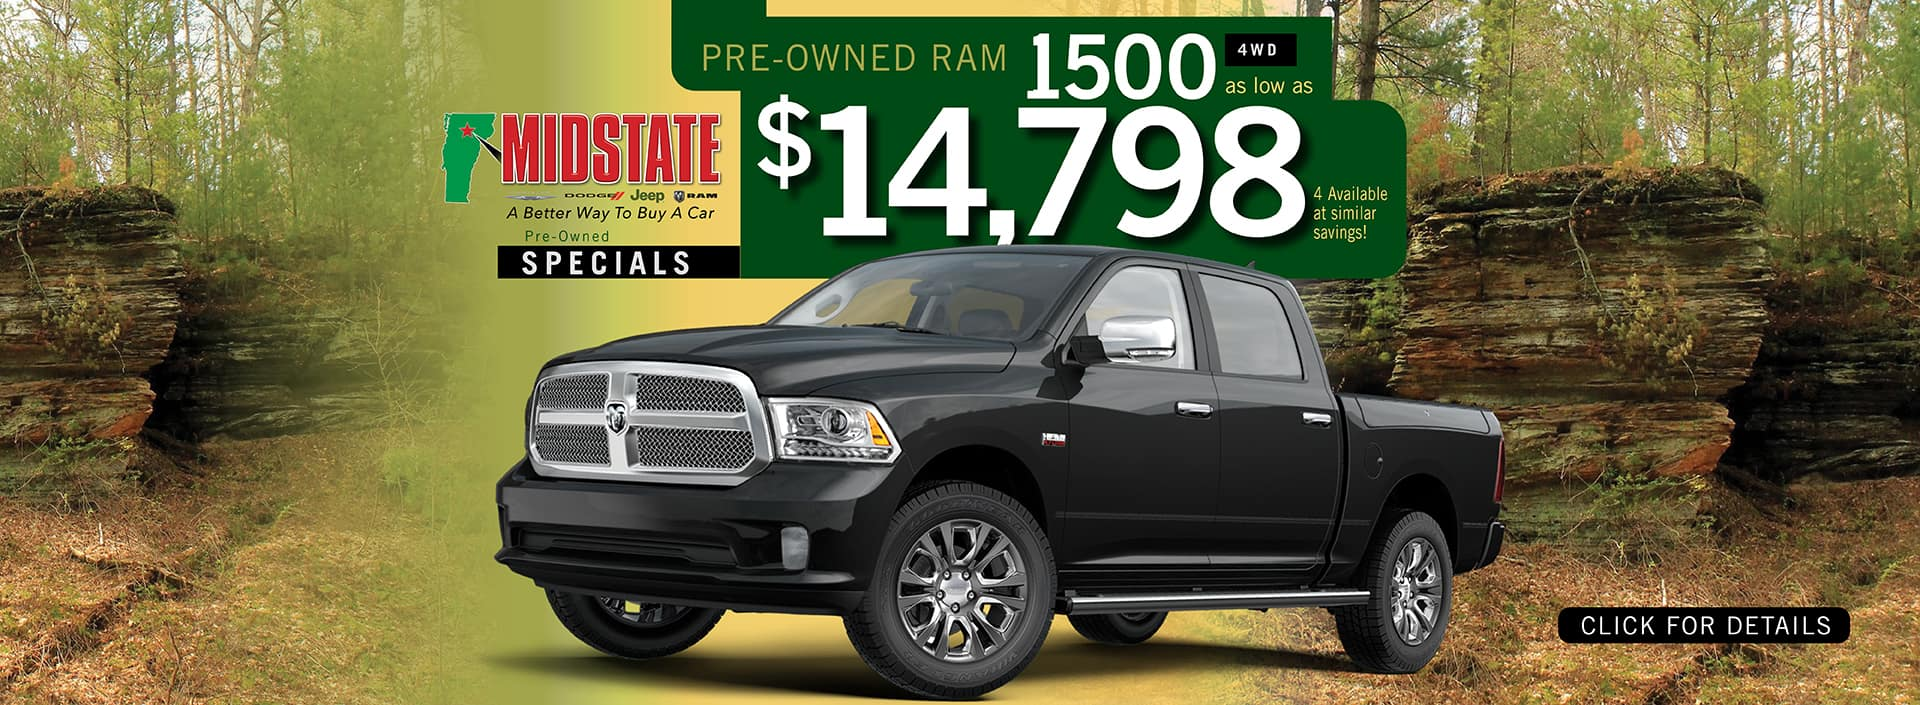 Used Ram 1500 Pre-Owned Offer | Barre, VT